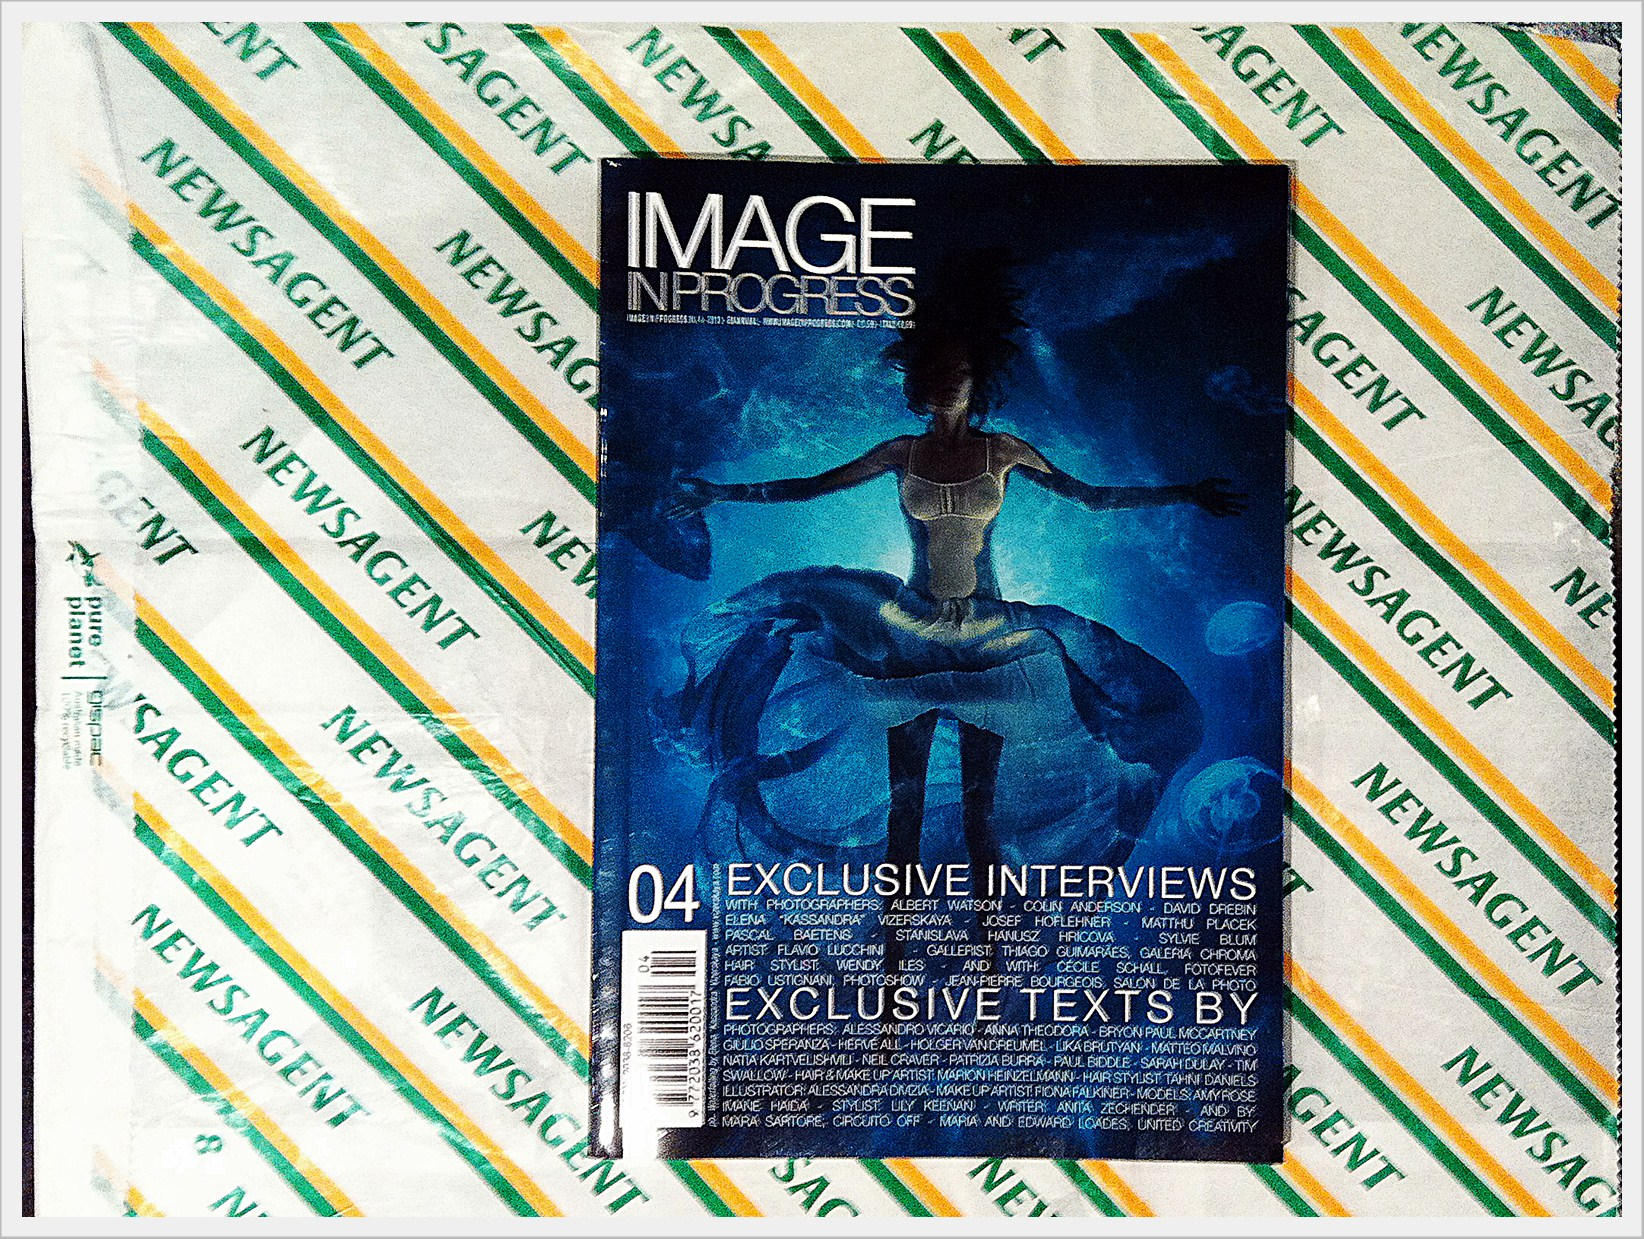 Image in progress Issue